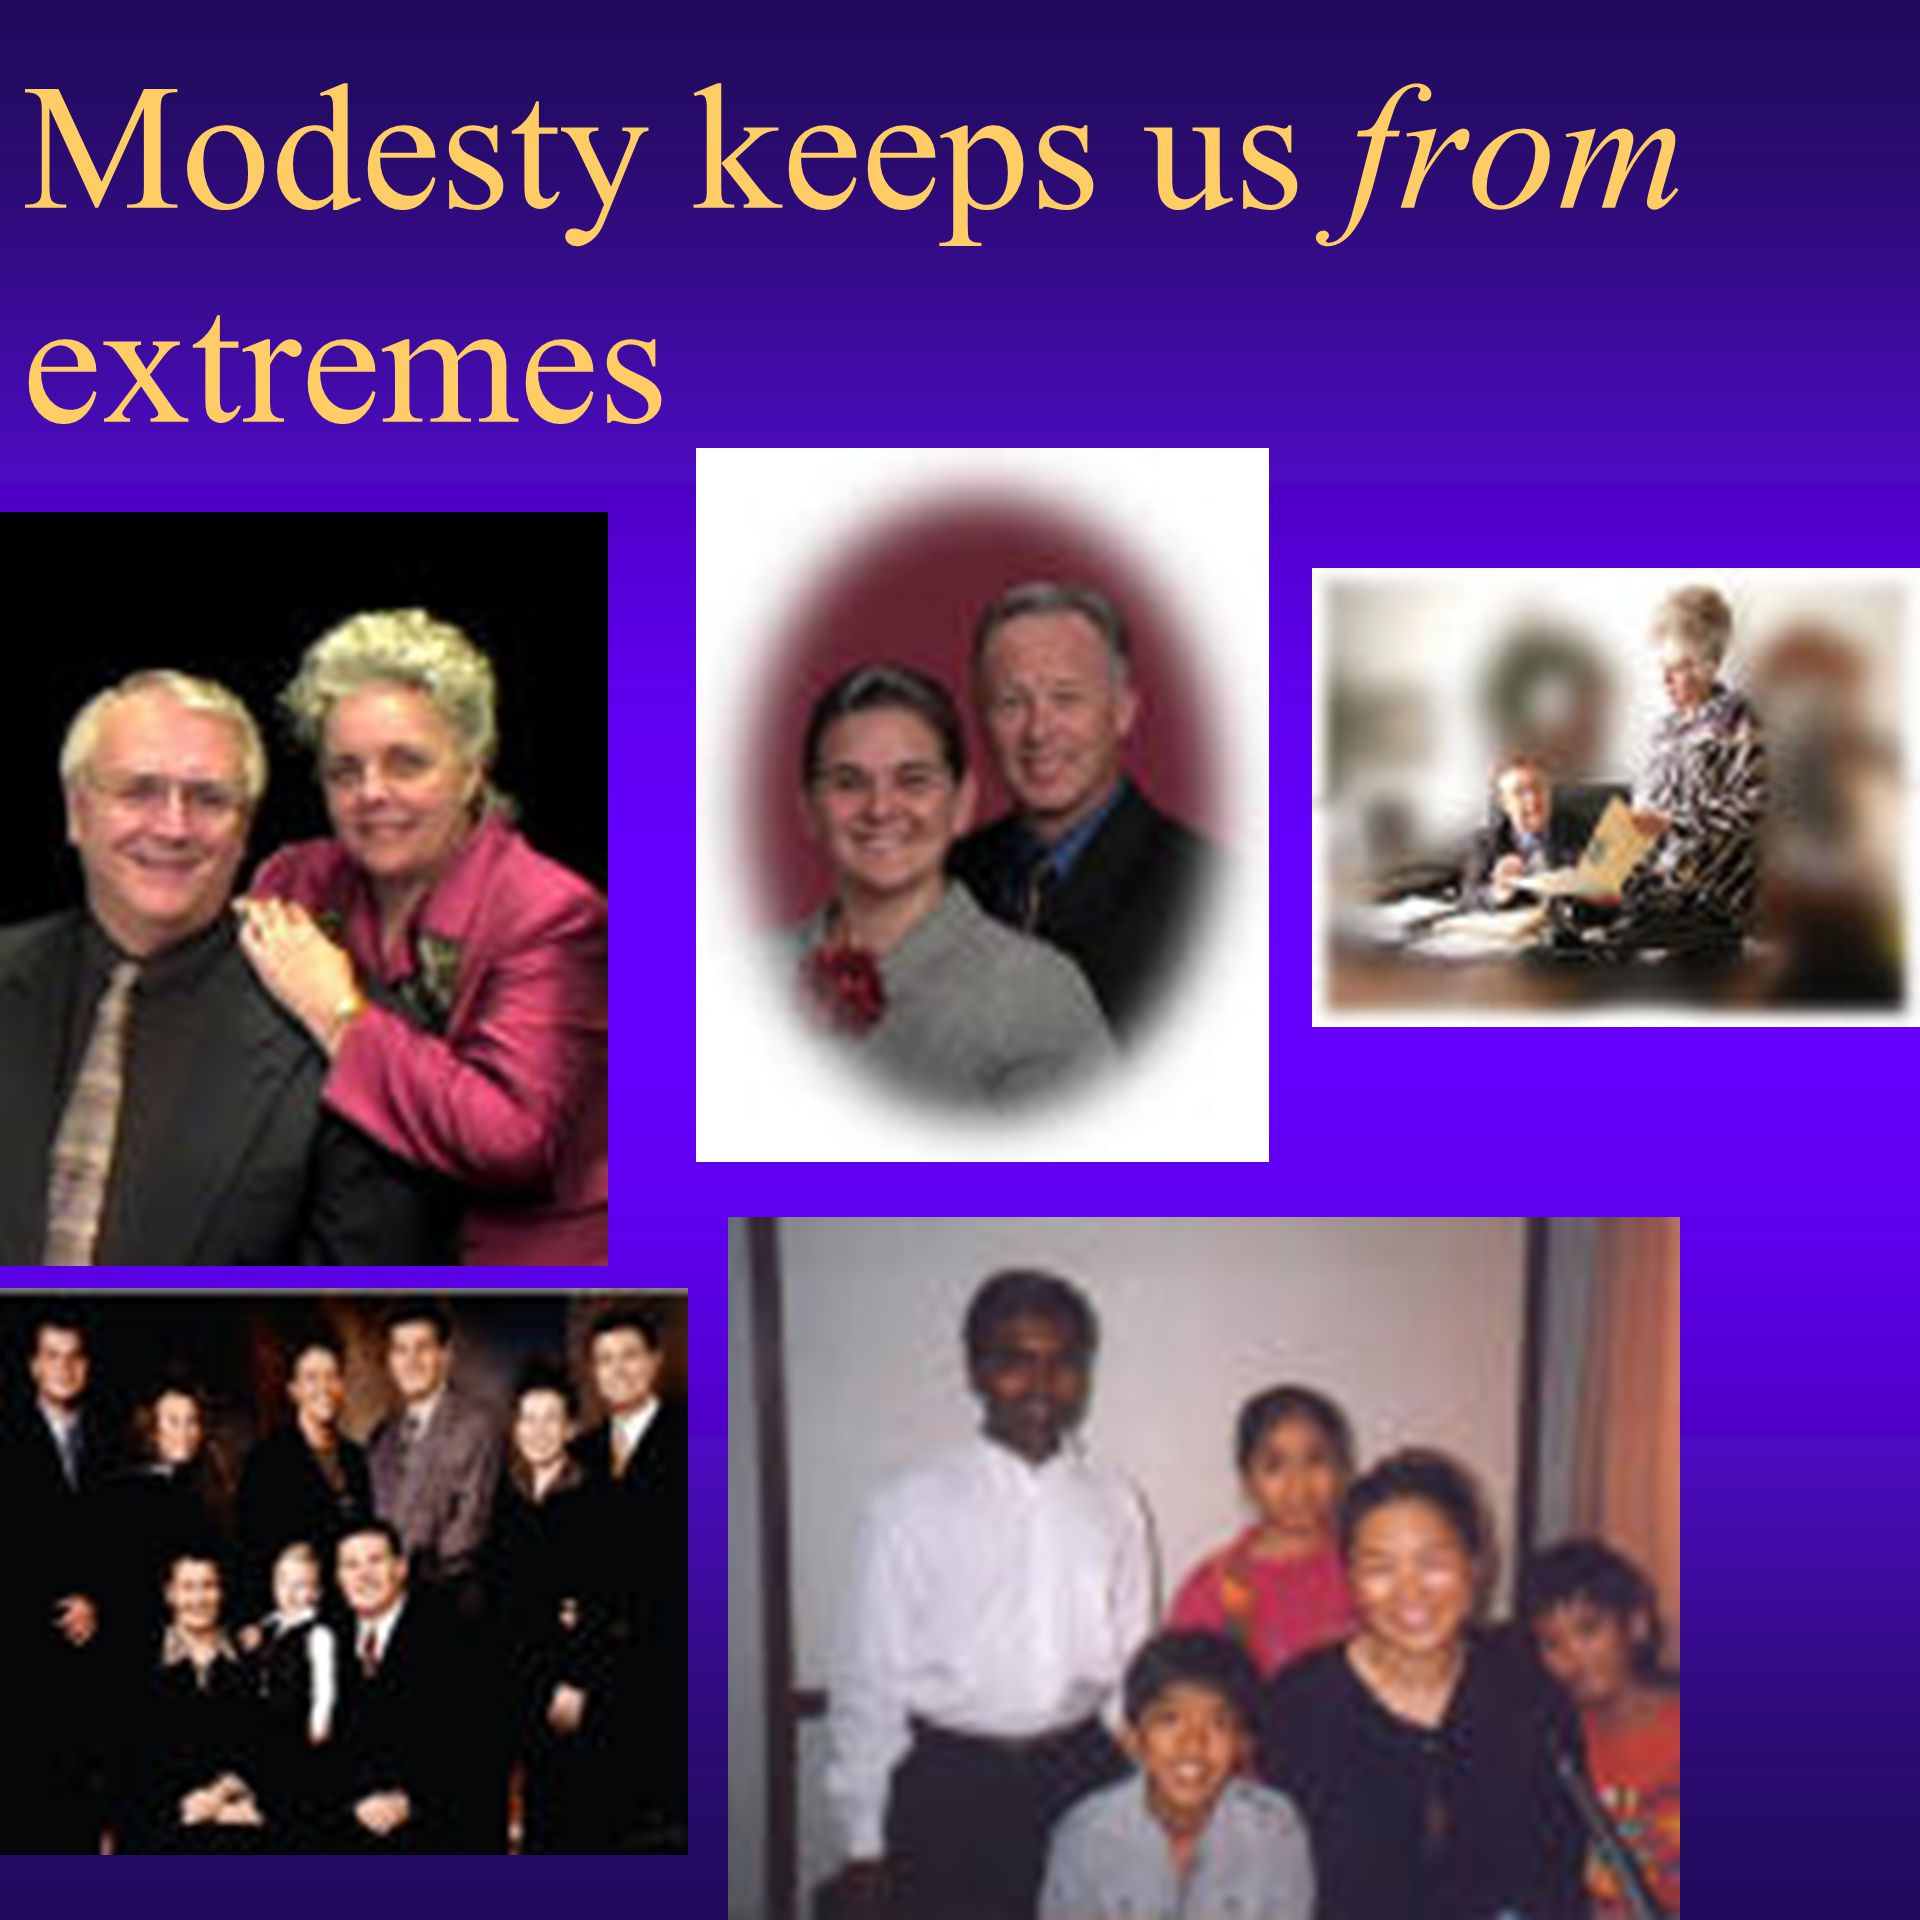 Modesty keeps us from extremes